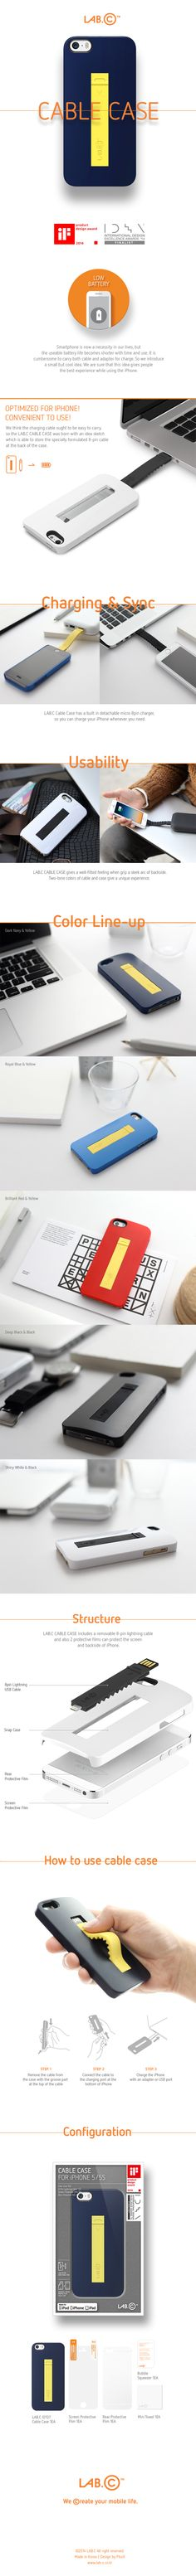 LAB.C Cable Case Product Design on Industrial Design Served